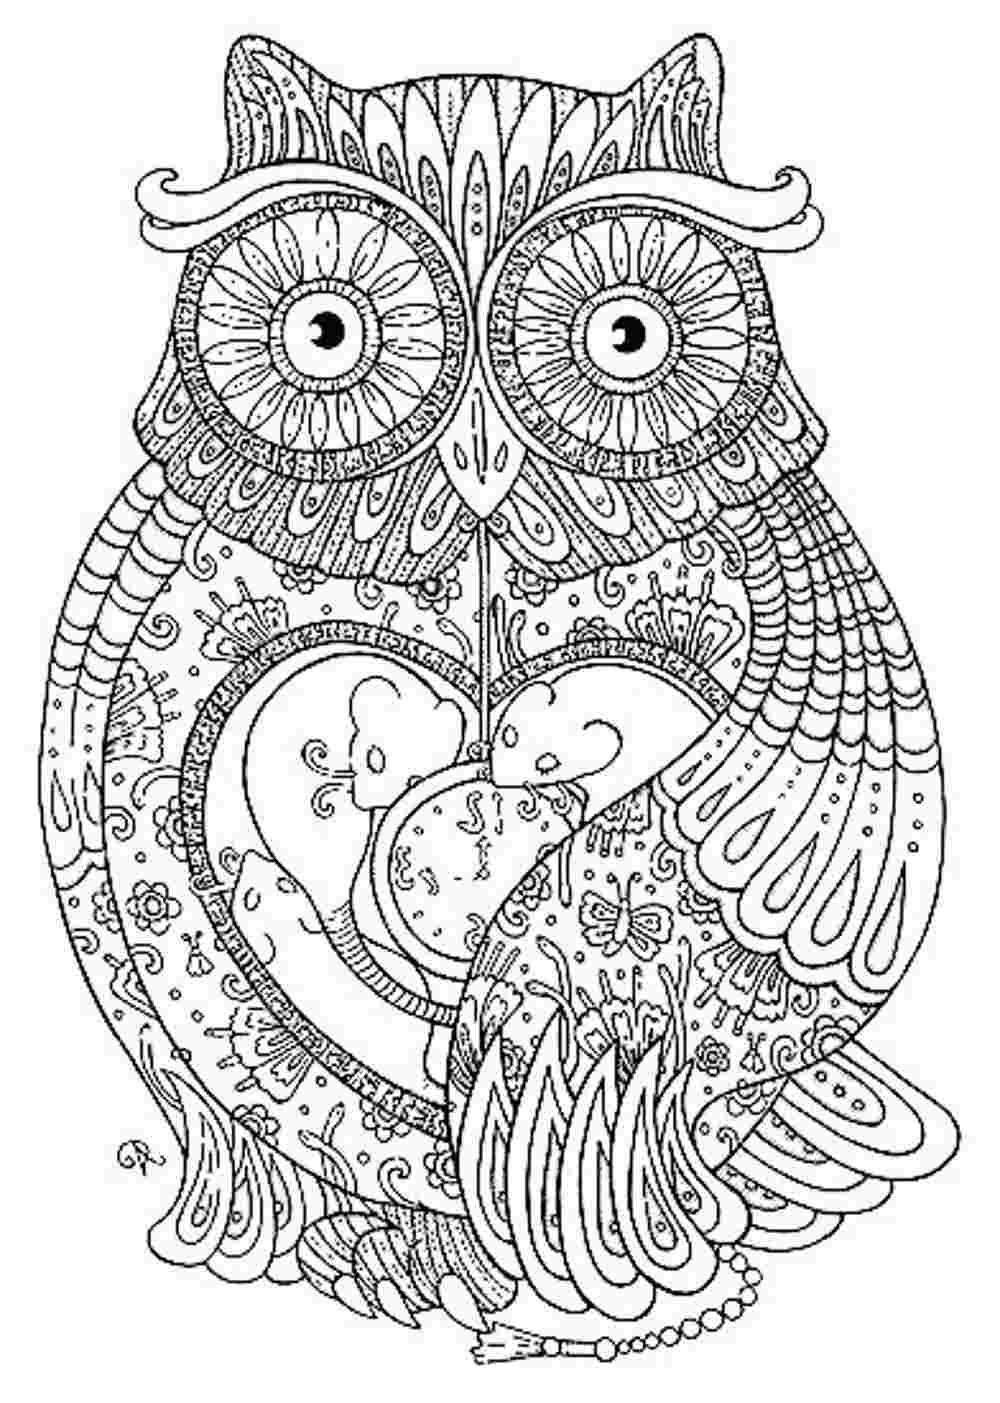 mandala coloring pages printable free animal mandala coloring pages to download and print for free